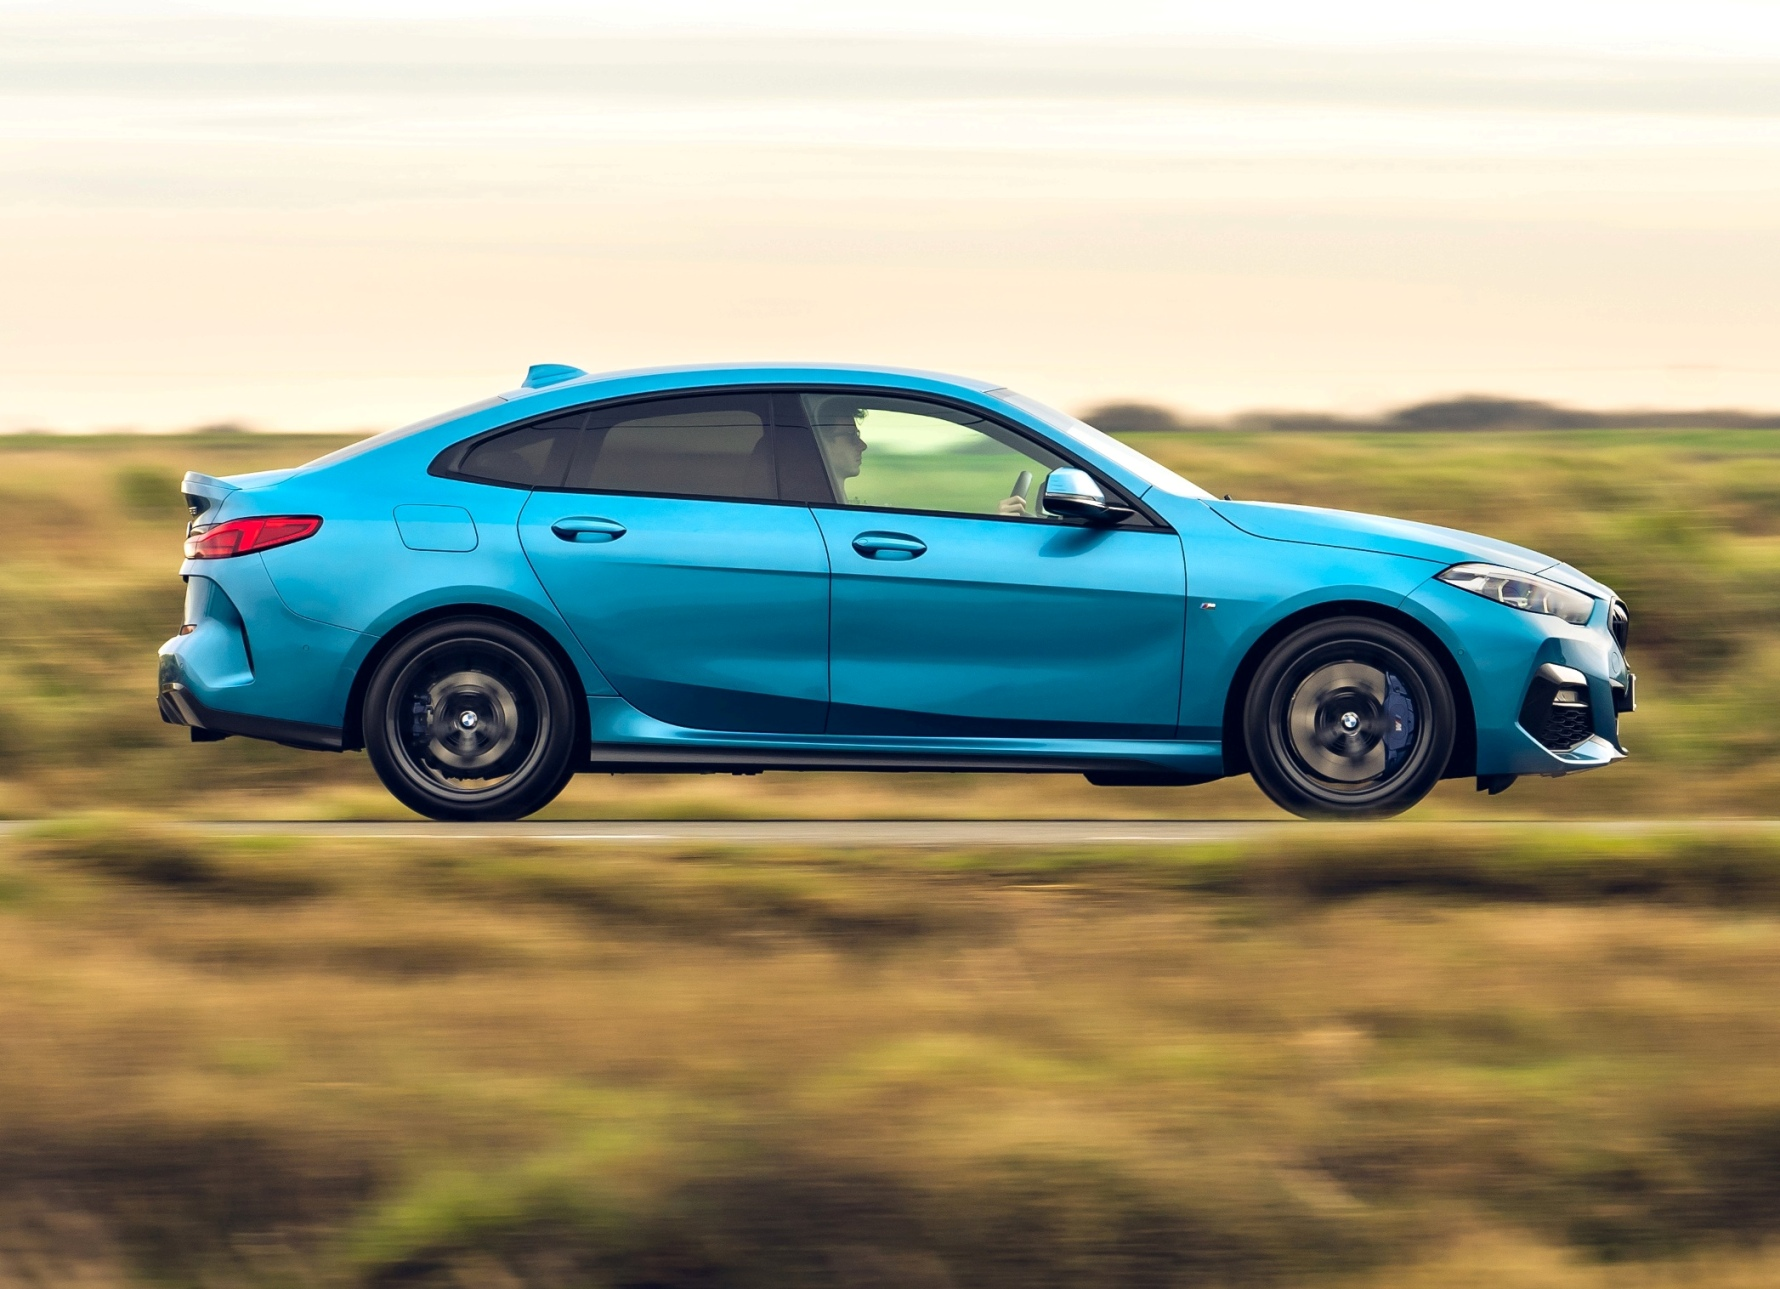 Sunday drive: BMW 2 Series Gran Coupe - Wheels Within Wales